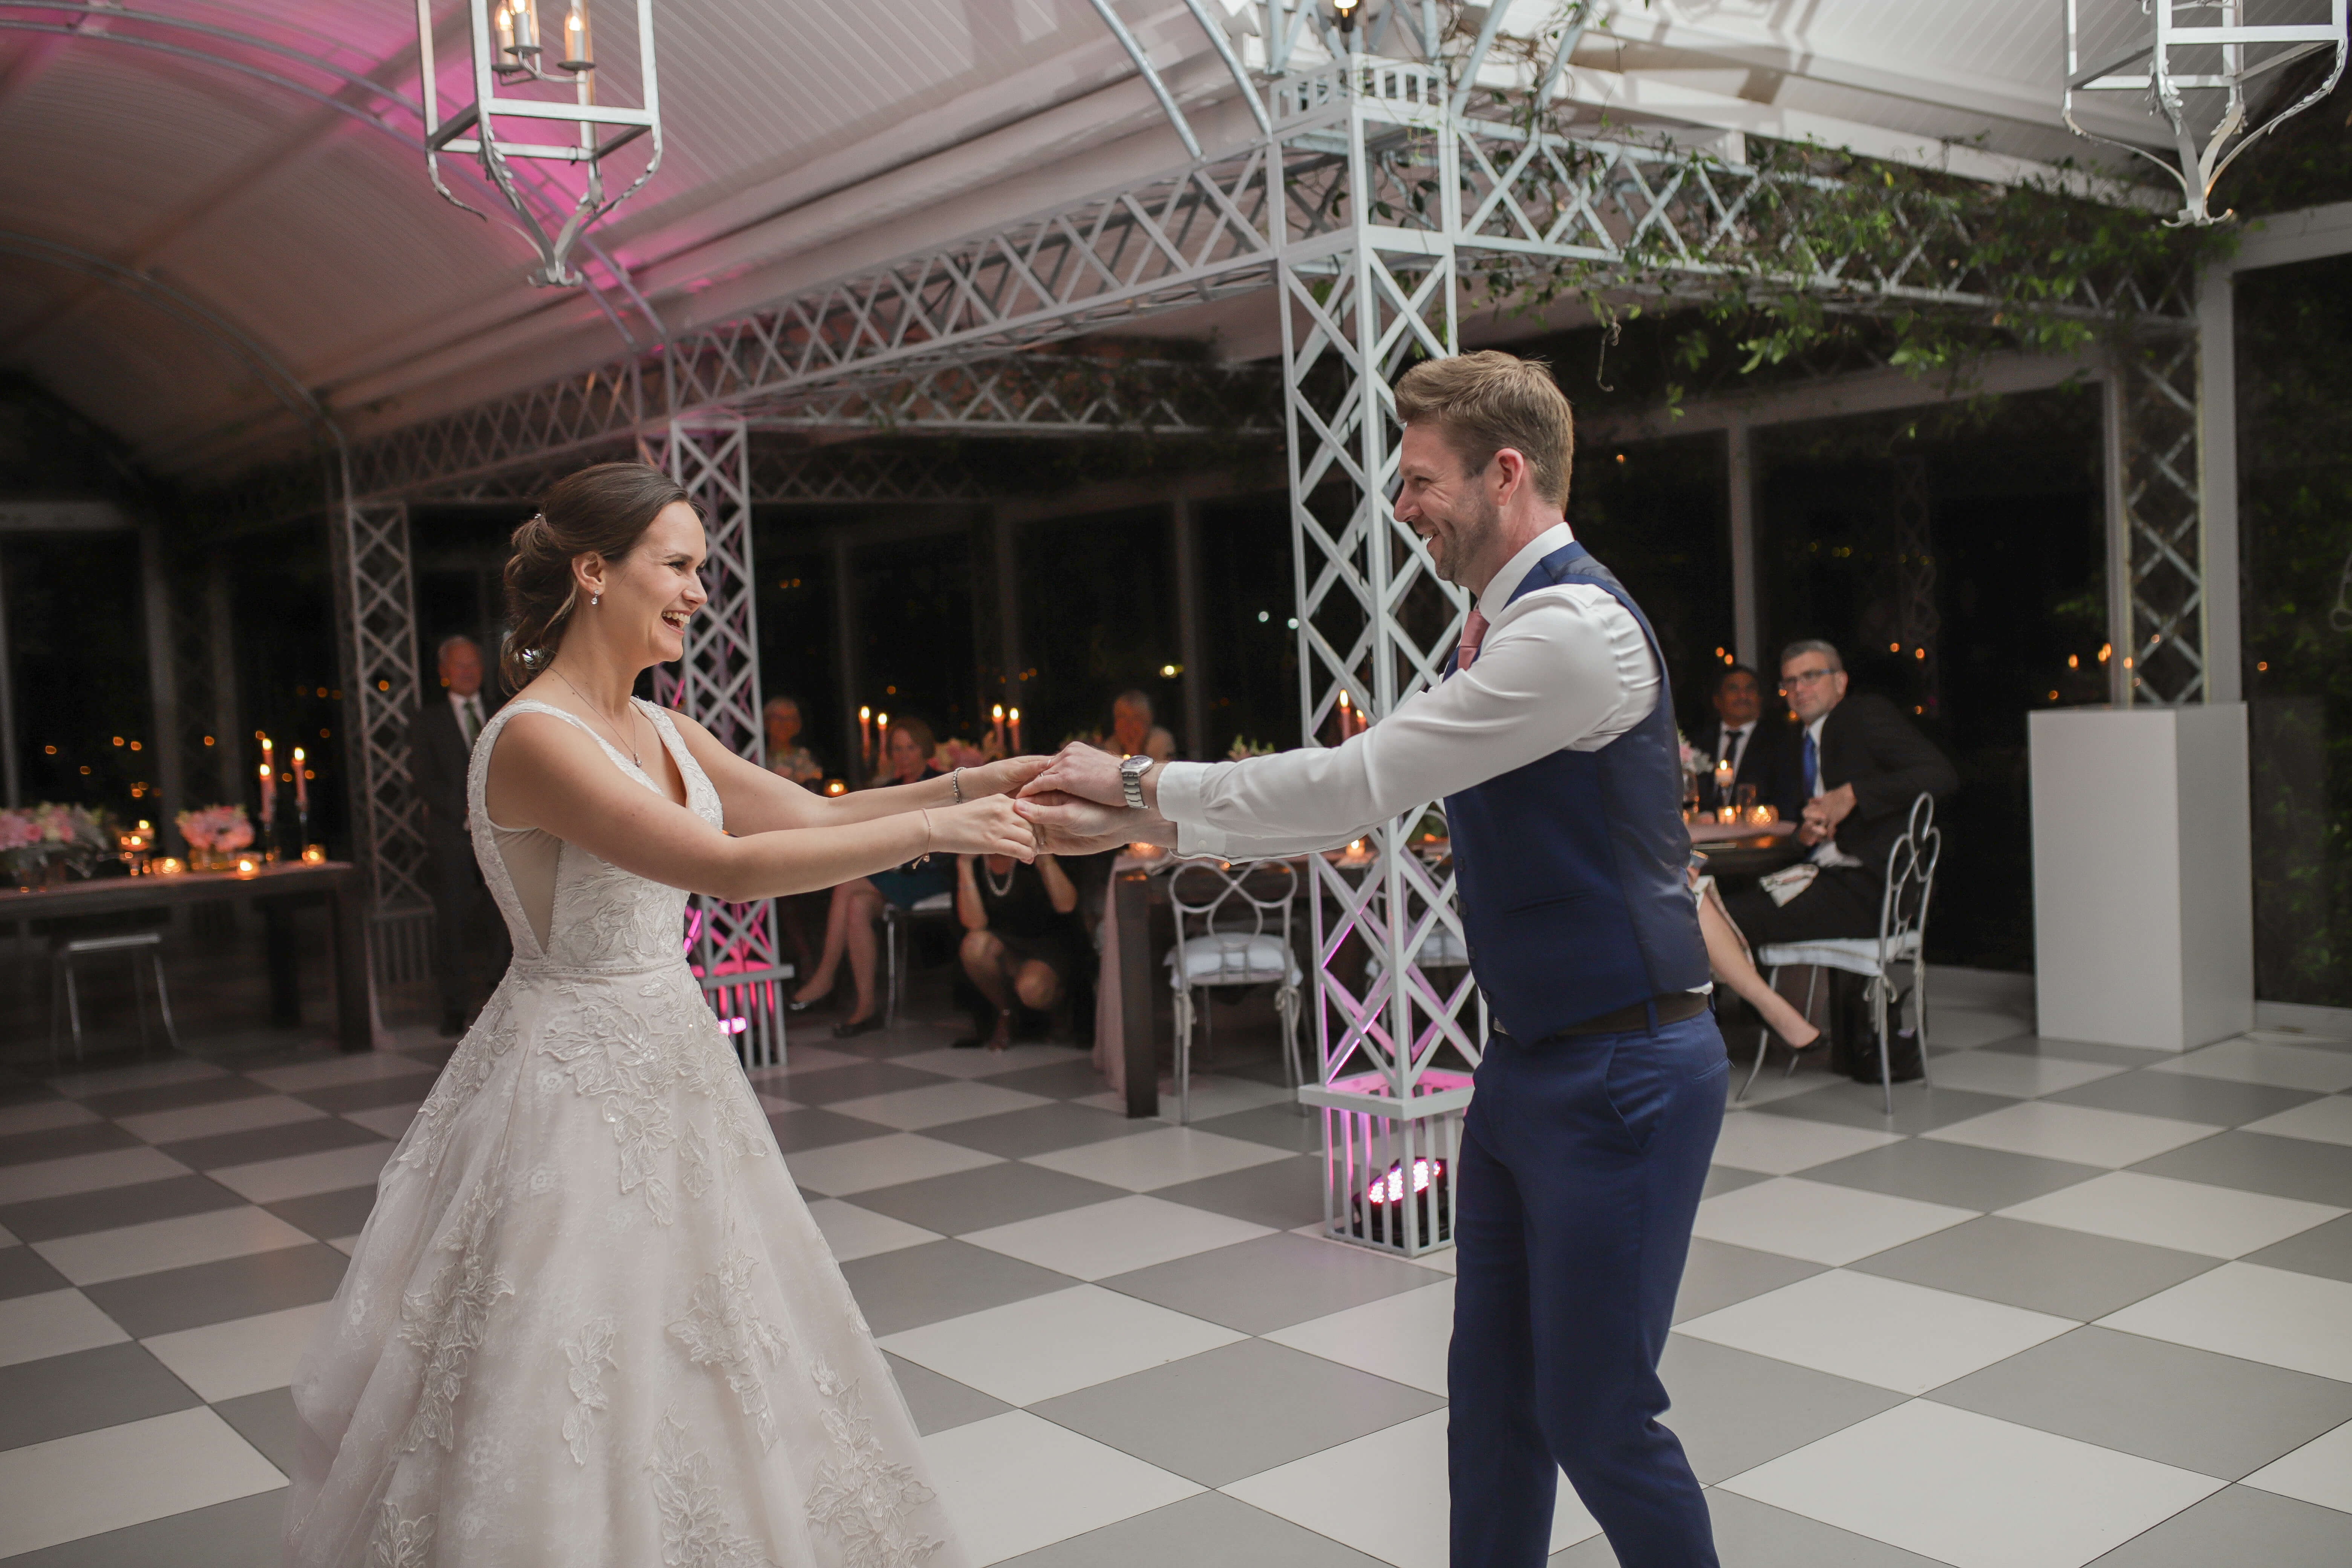 The first dance at a beautiful South African wedding.